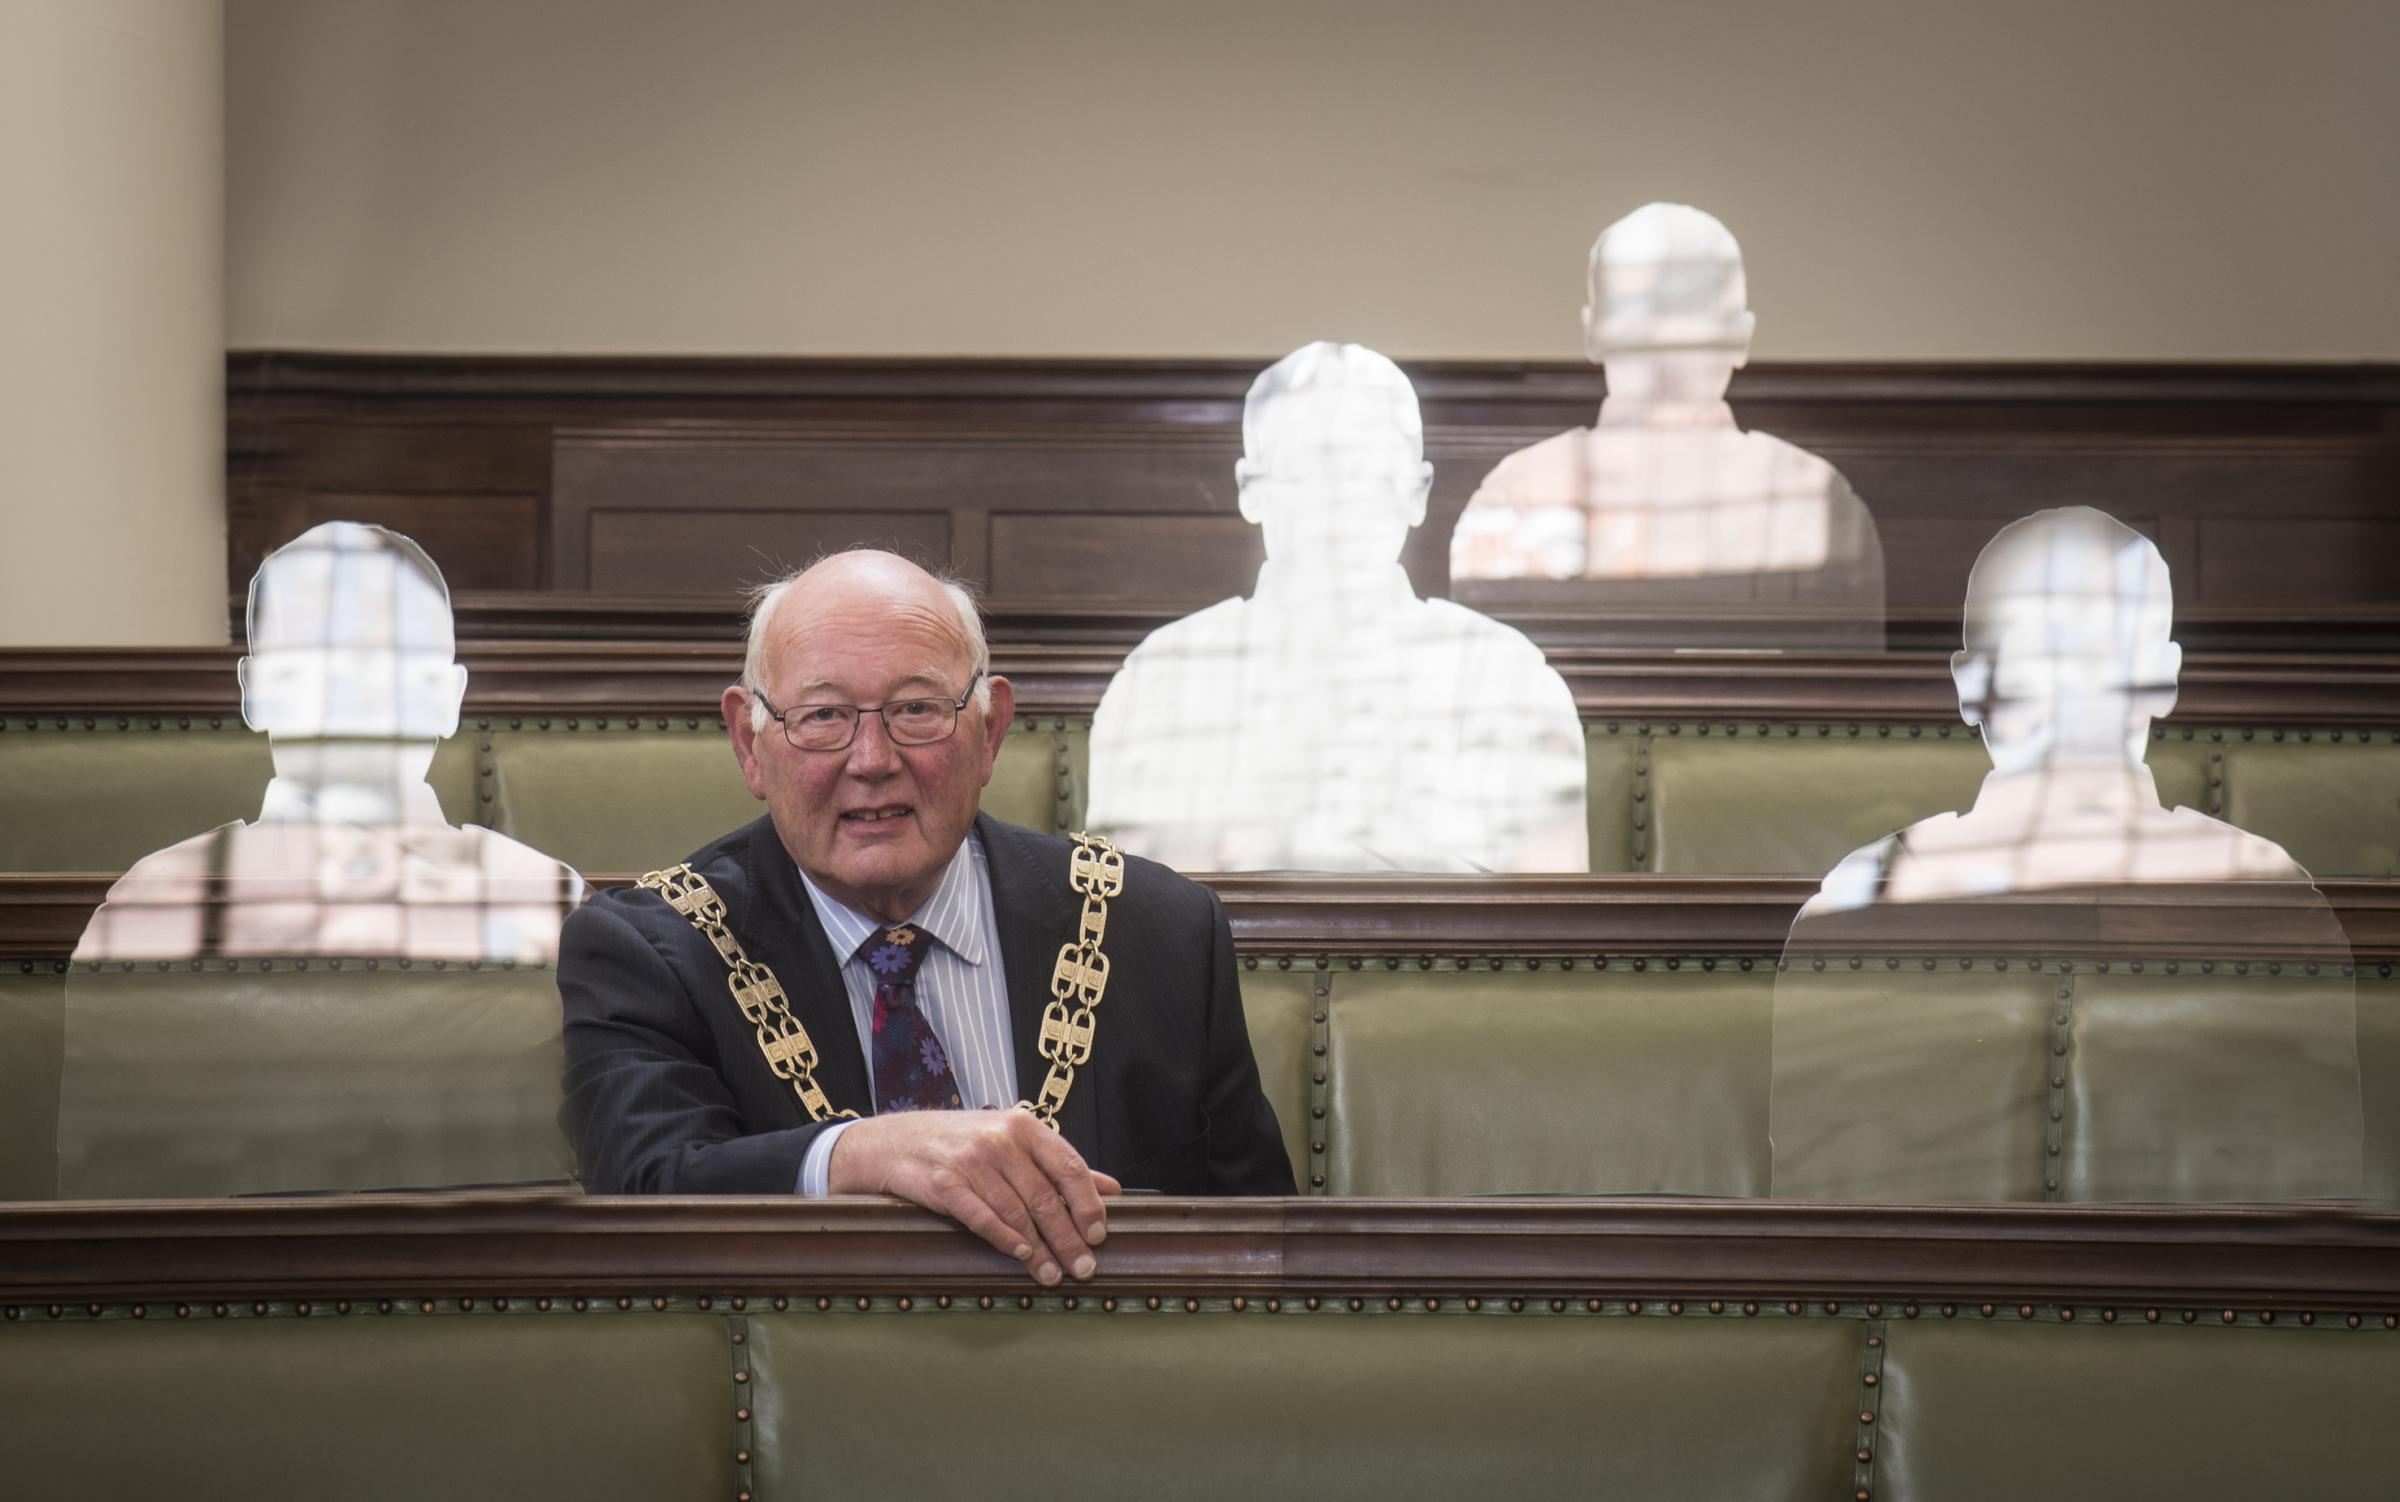 North Yorkshire County Council chairman Robert Windass with some of the figures